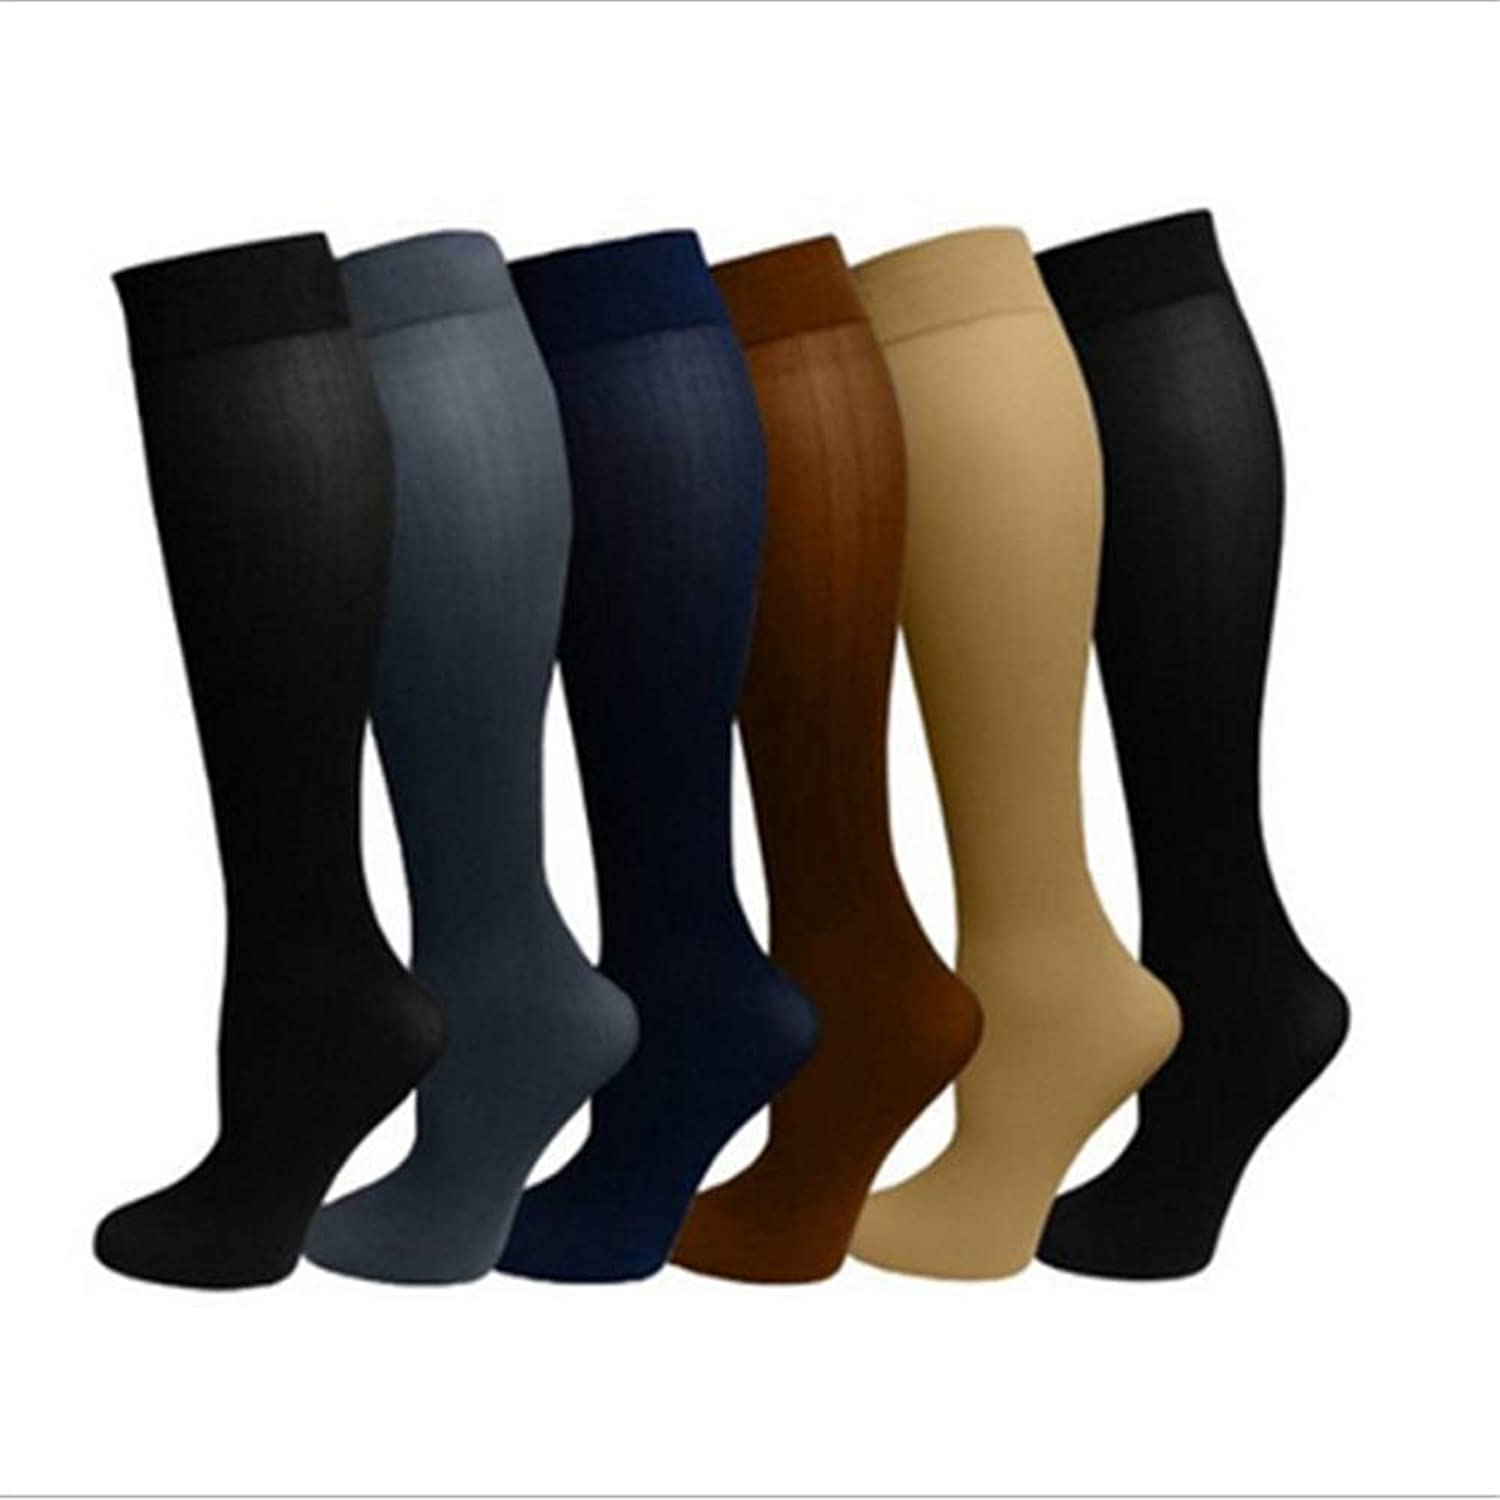 Graduated Compression Socks Sports Compression Socks Pack of 6 Pairs Stockings for Men Women Running Athletic Edema Diabetic Varicose Veins Travel Pregnancy Shin Splints Calf Compression Sleeve